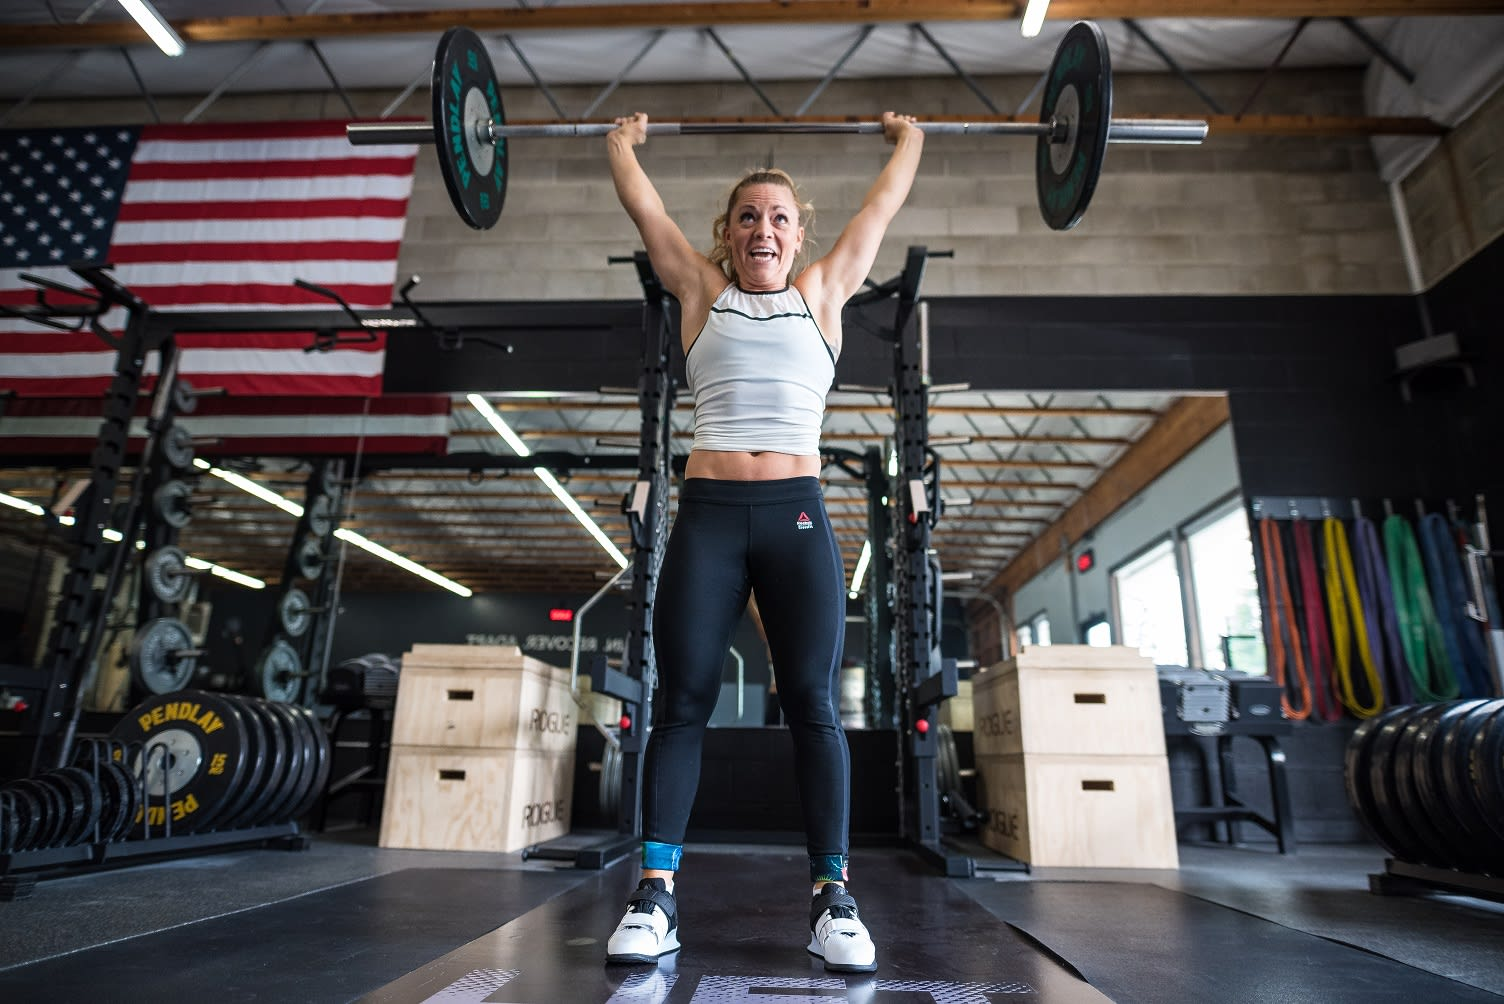 morghan-king-weightlifting